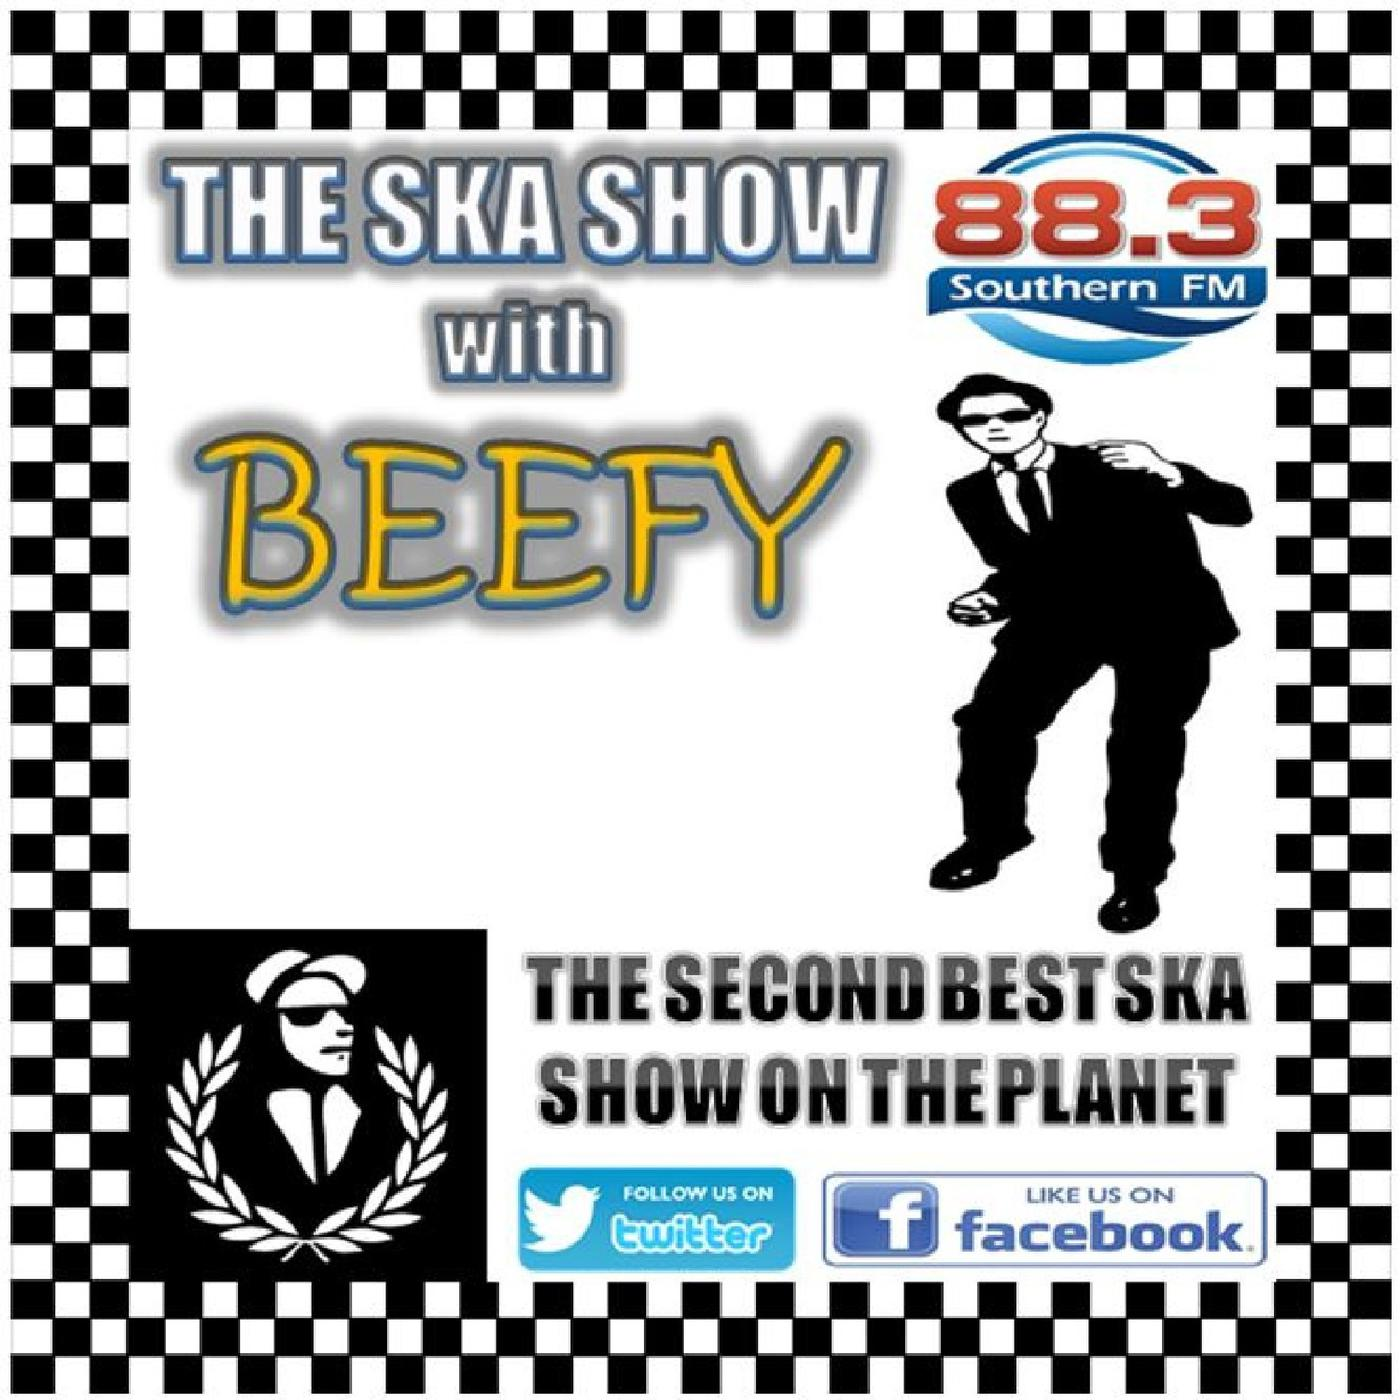 The Ska Show with Beefy, November 22nd 2018